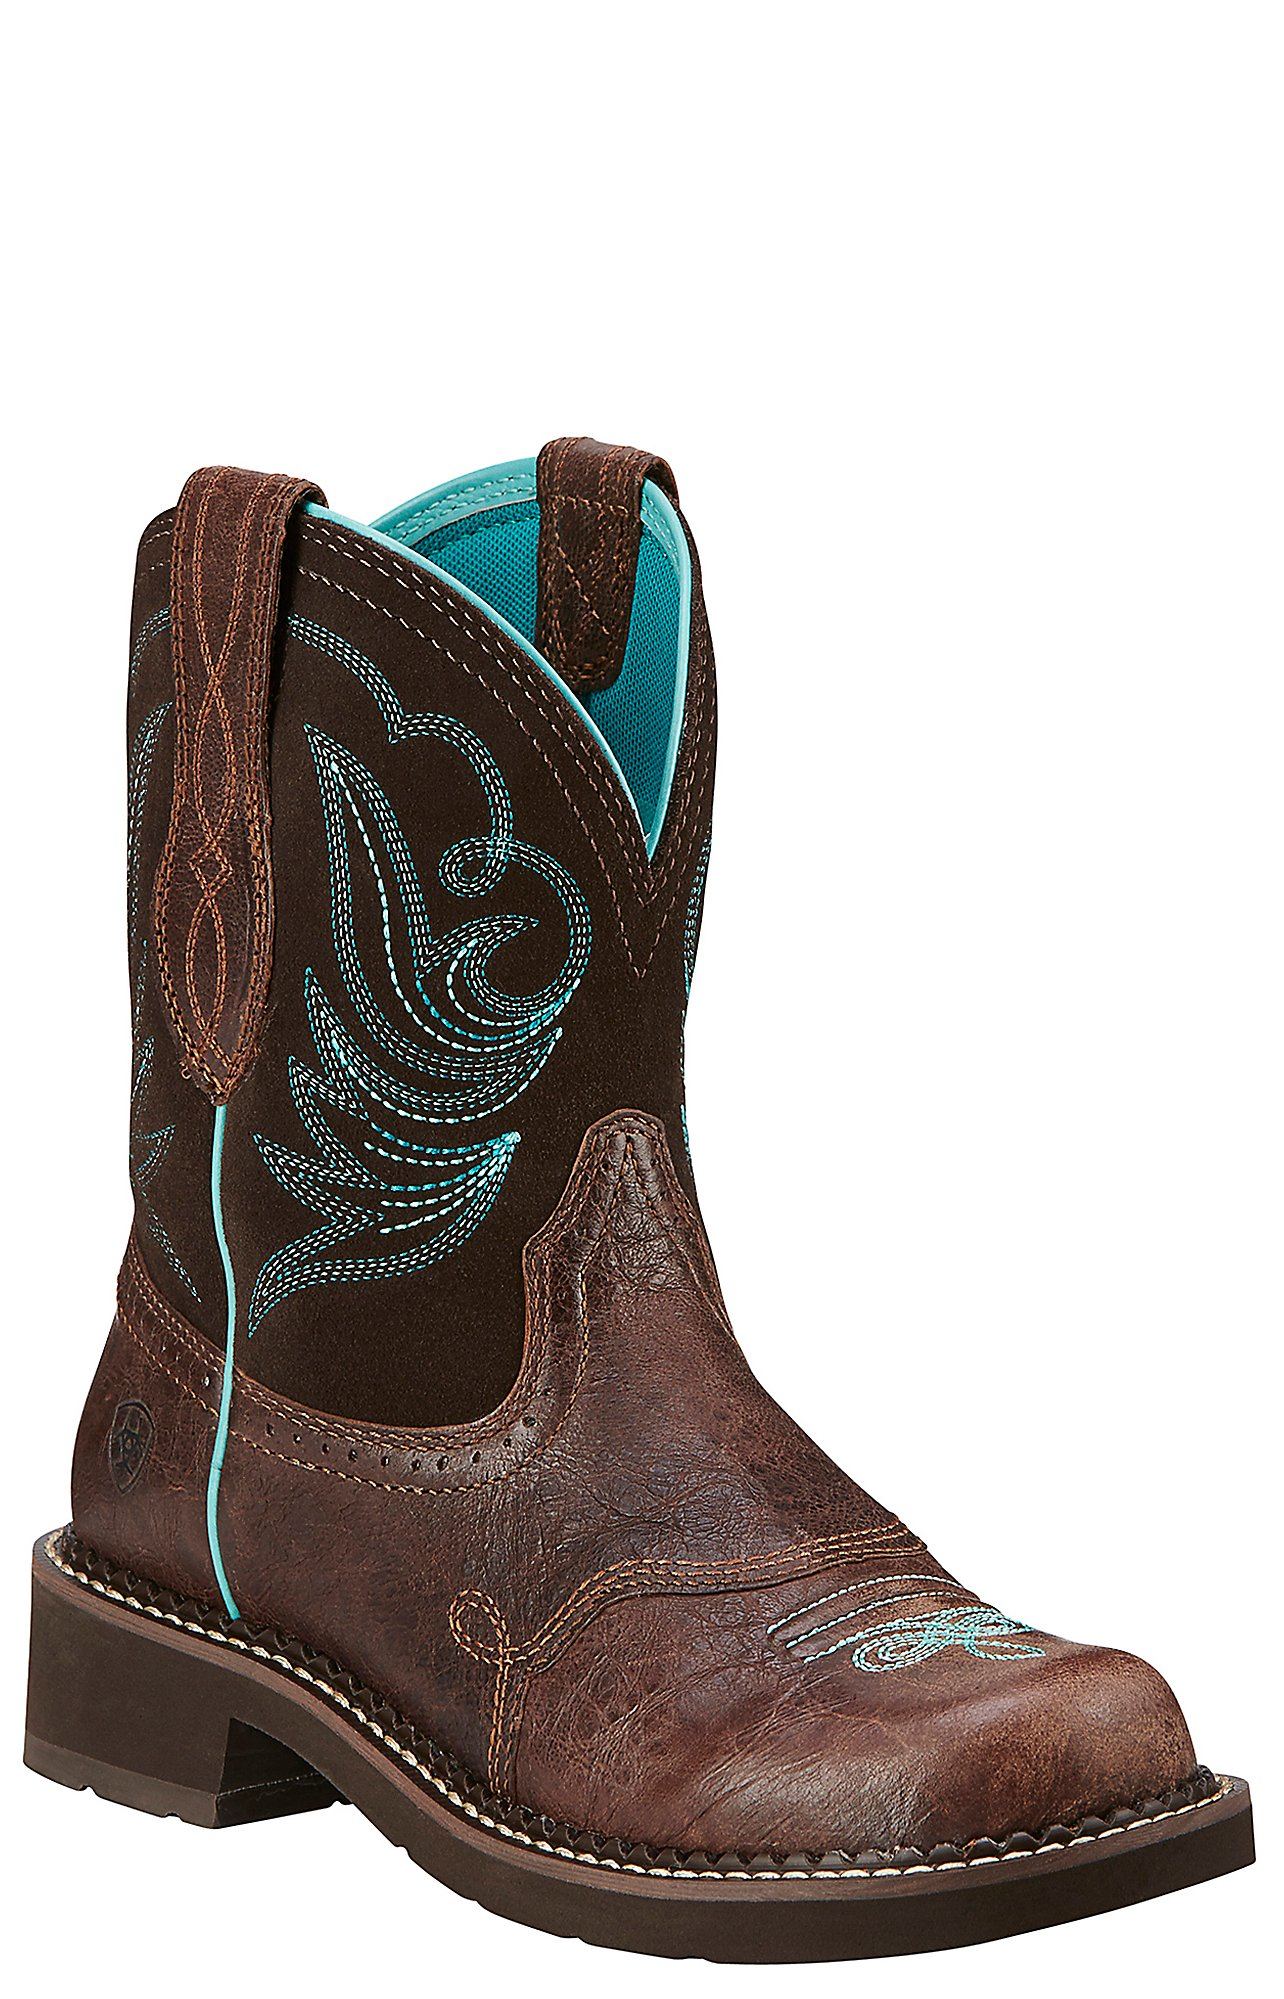 Shop Fatbaby Boots & Justin Gypsy Boots | Free Shipping | Cavender's